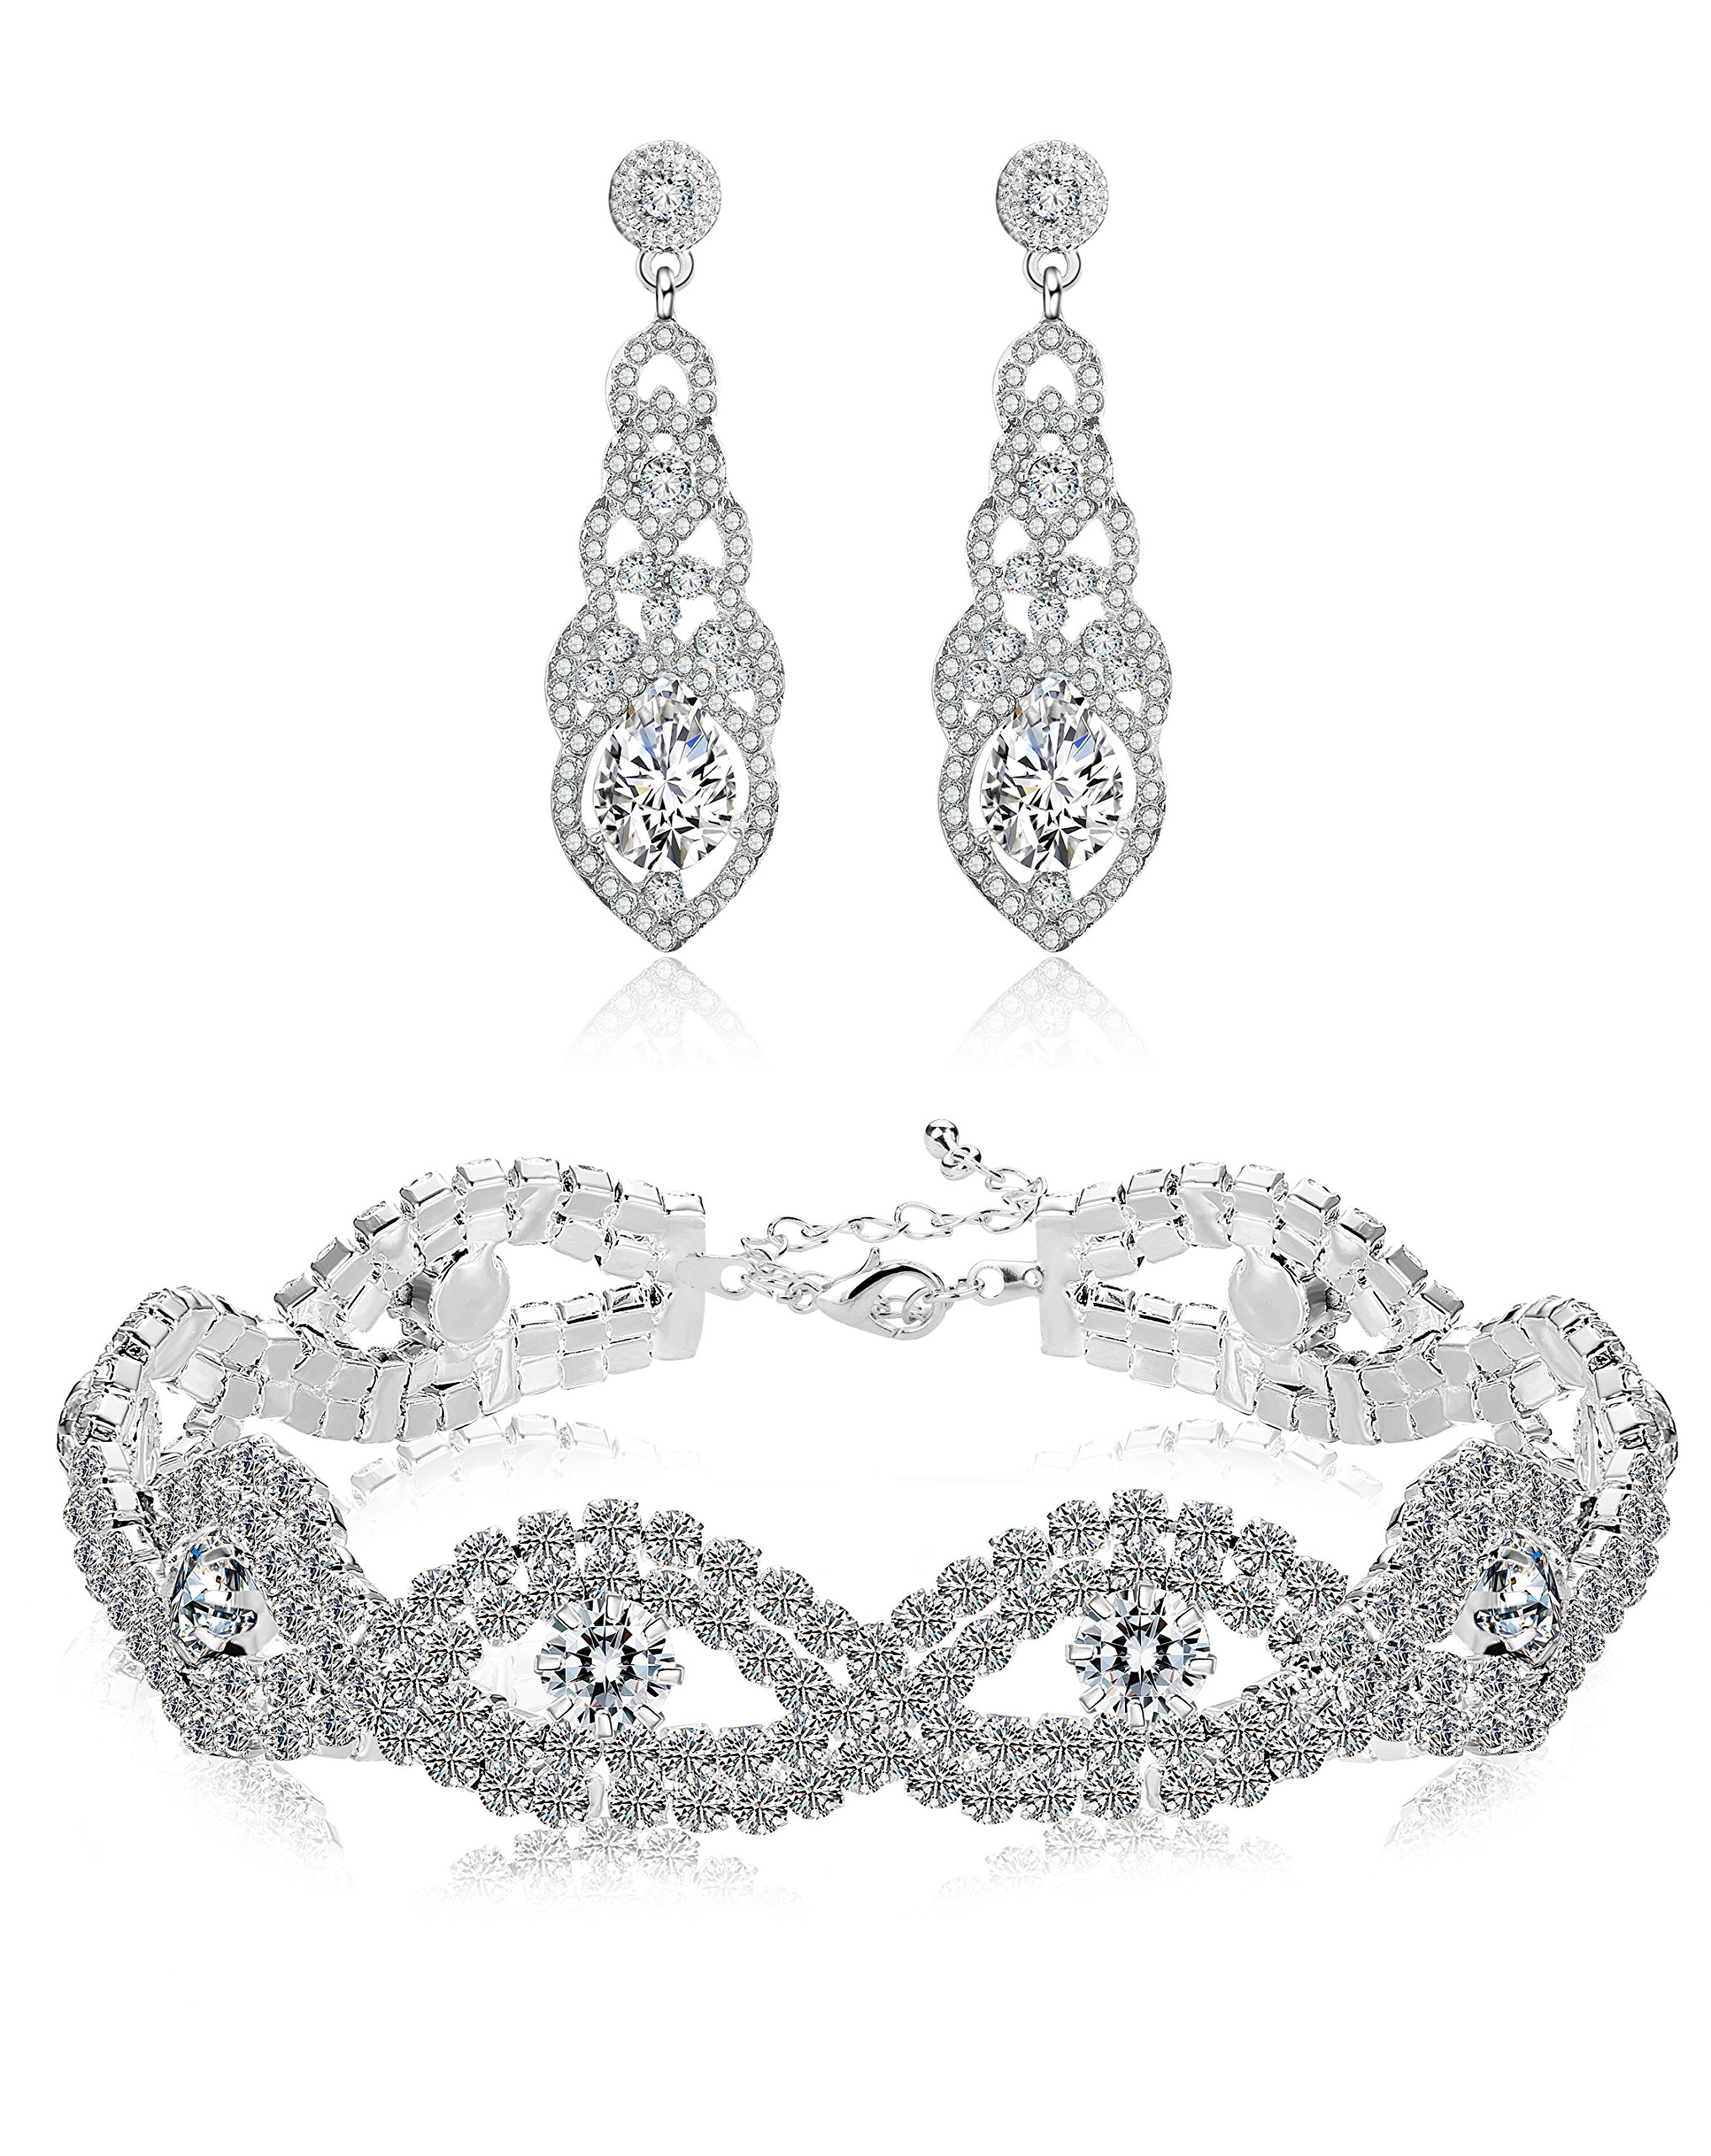 Hanpabum Bridal Wedding Jewelry Set for Women Bracelets and Dangle Teardrop Earrings Set for Women Jewelry Made with Clear Crystals (Earings and Bracelets)